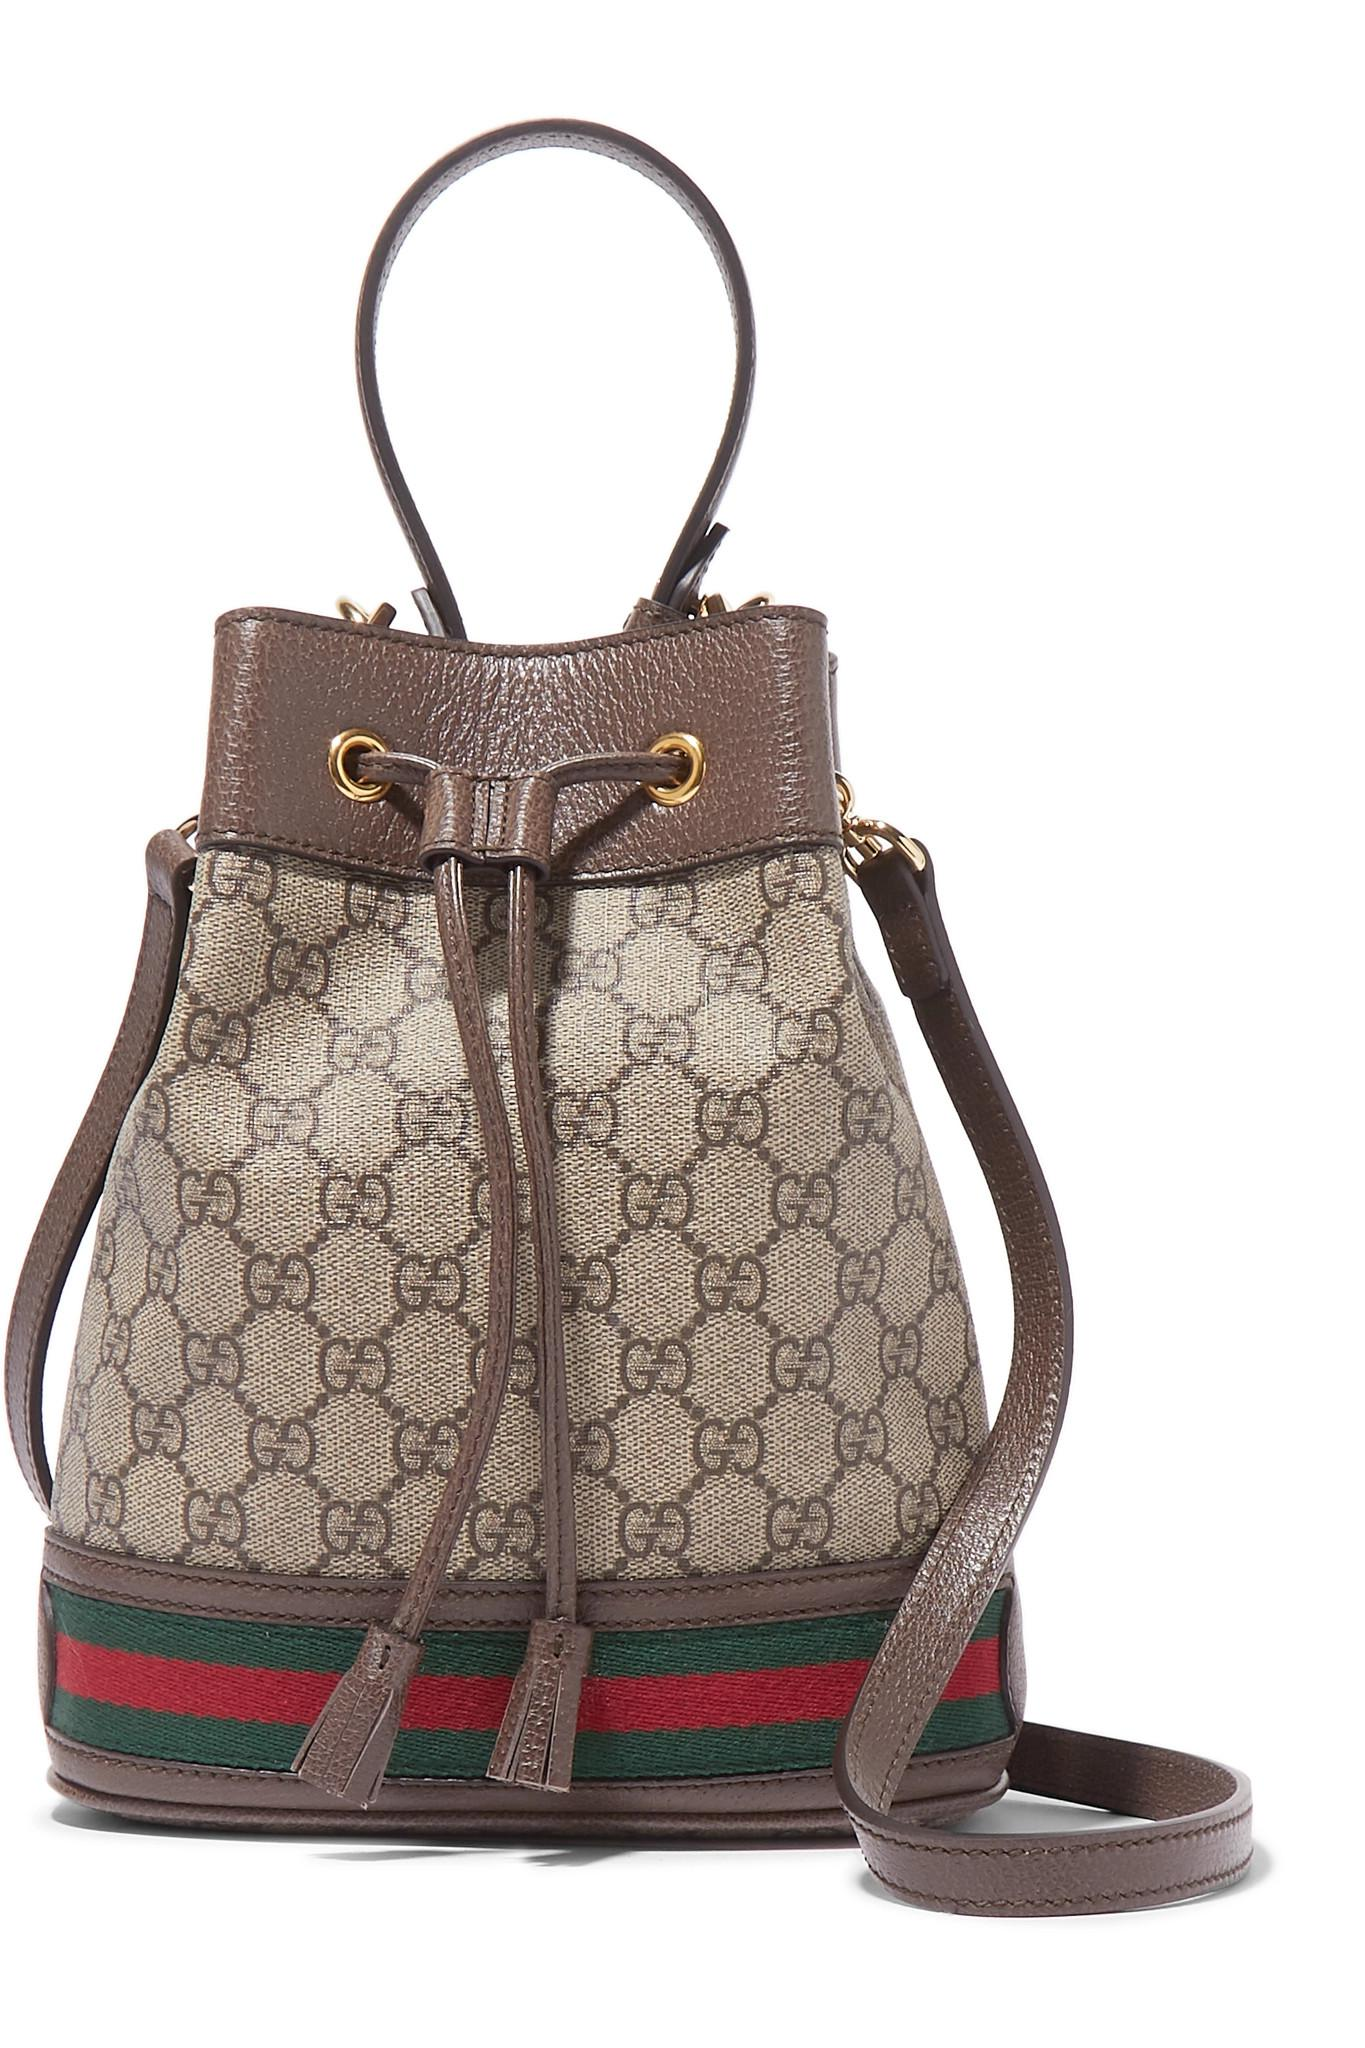 8f0435747a Gucci. Women s Brown Ophidia Small Textured Leather-trimmed Printed  Coated-canvas Bucket Bag